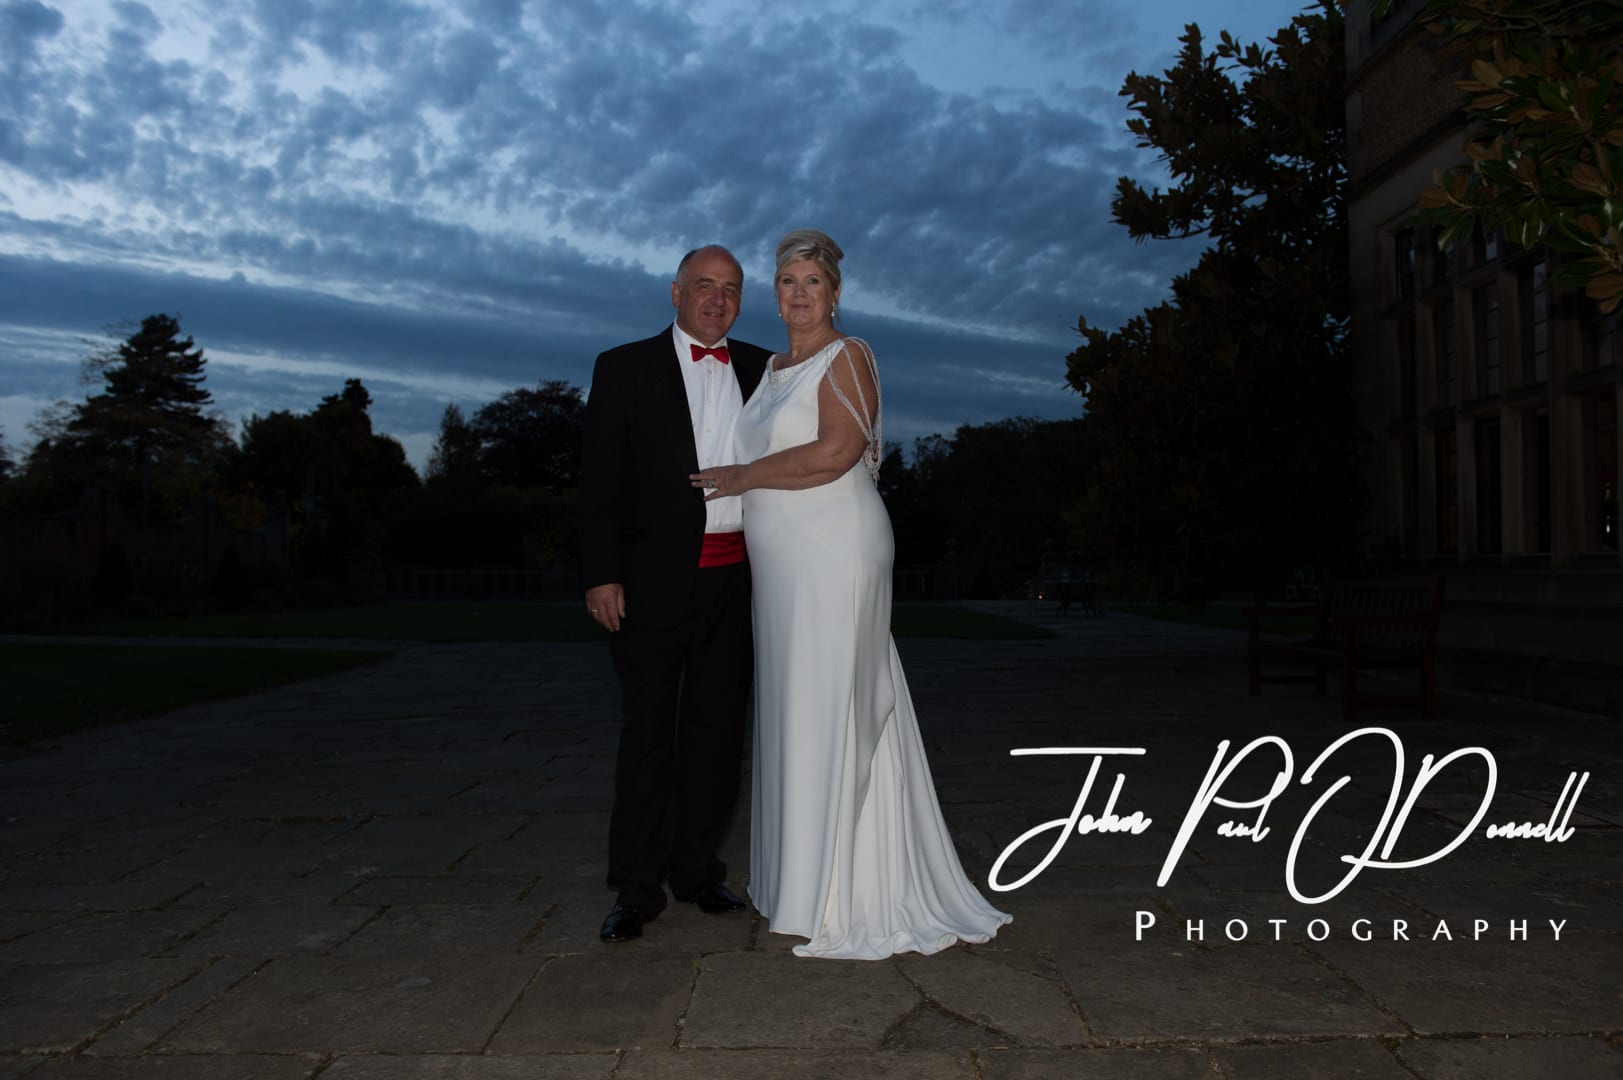 Nichola and Mikes Autumn Wedding at Fanhams Hall